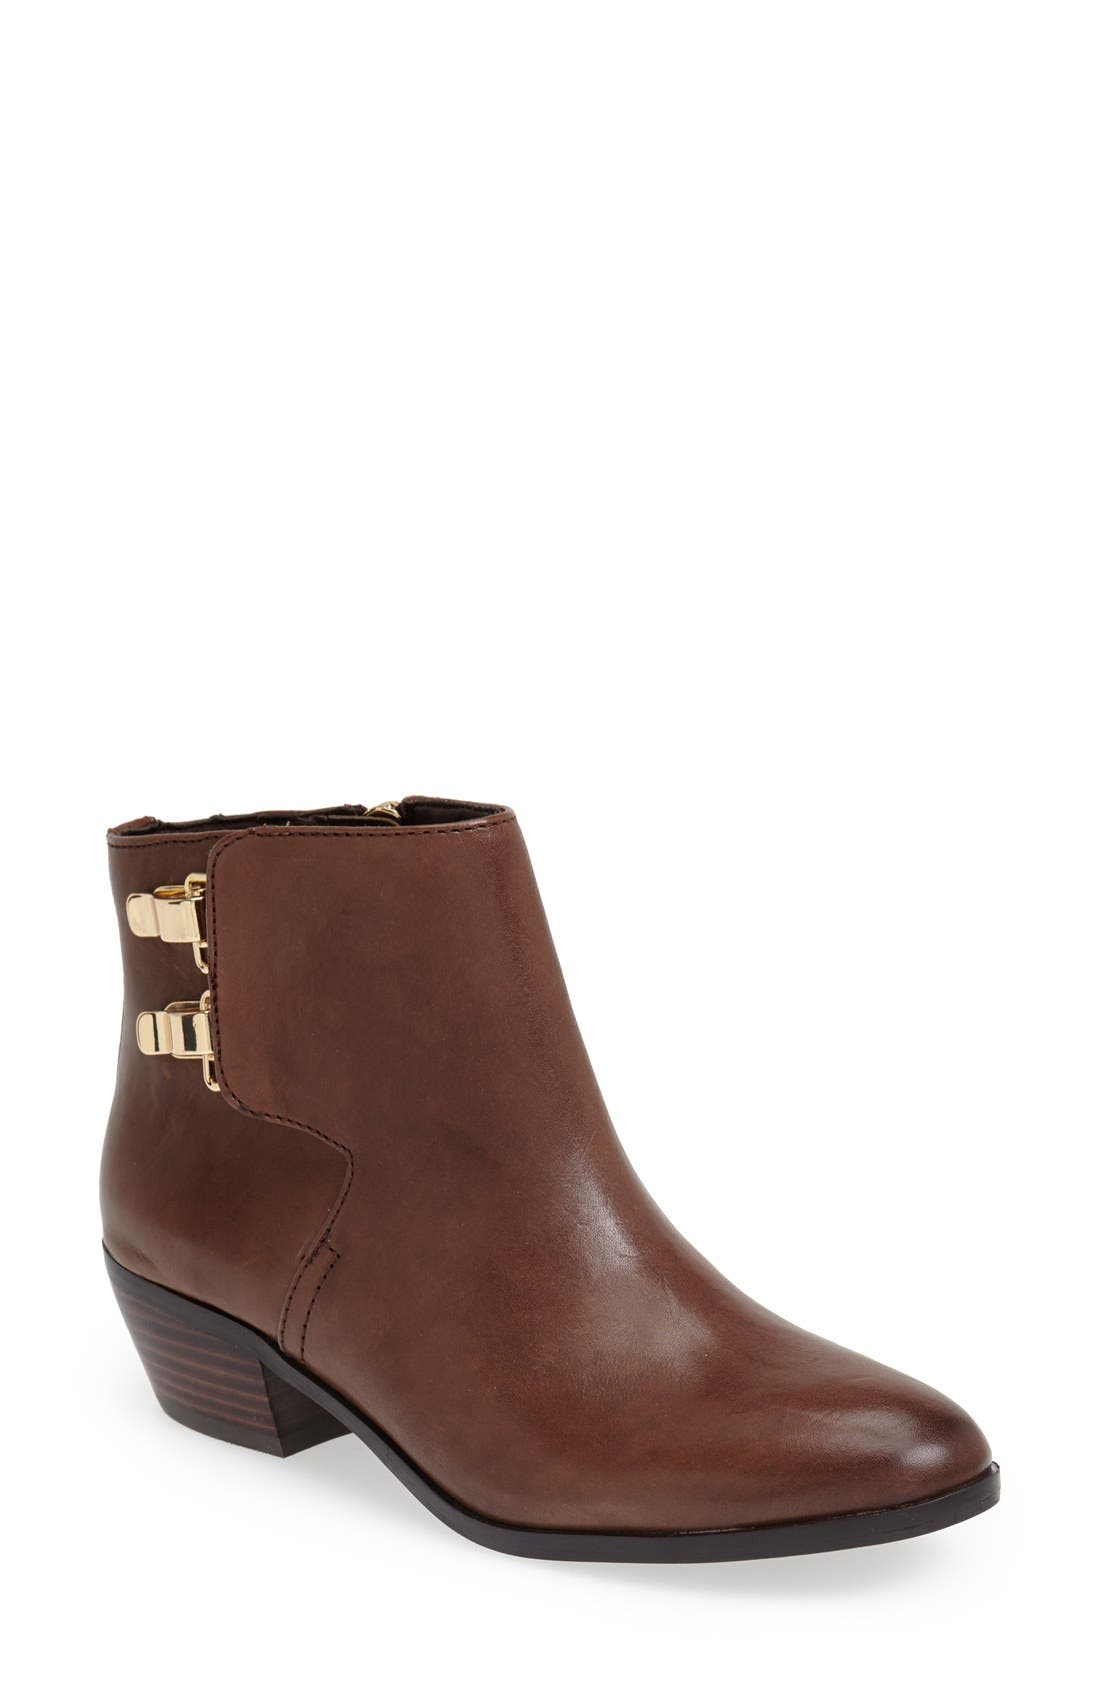 Alternate Image 1 Selected - Sam Edelman 'Peter' Leather Bootie (Women)